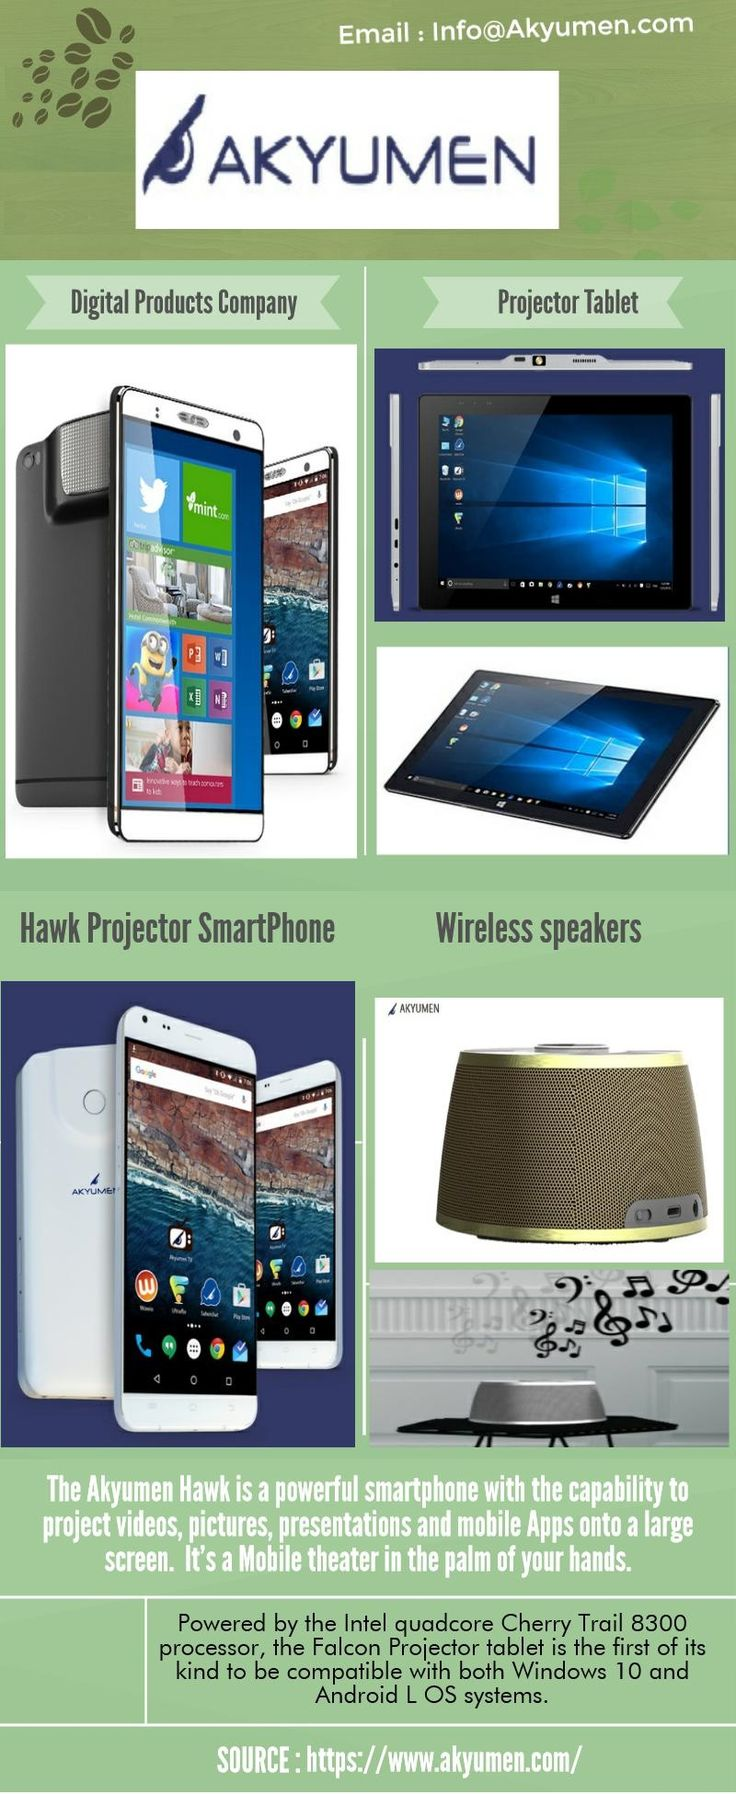 Digital Products Company foreseeing the need to go mobile have created mobile technology products that increase your professional abilities as well as allow for great entertainment.  A digital products company has created a Projector Tablet that may very well change the way students work in the classroom. https://www.akyumen.com/